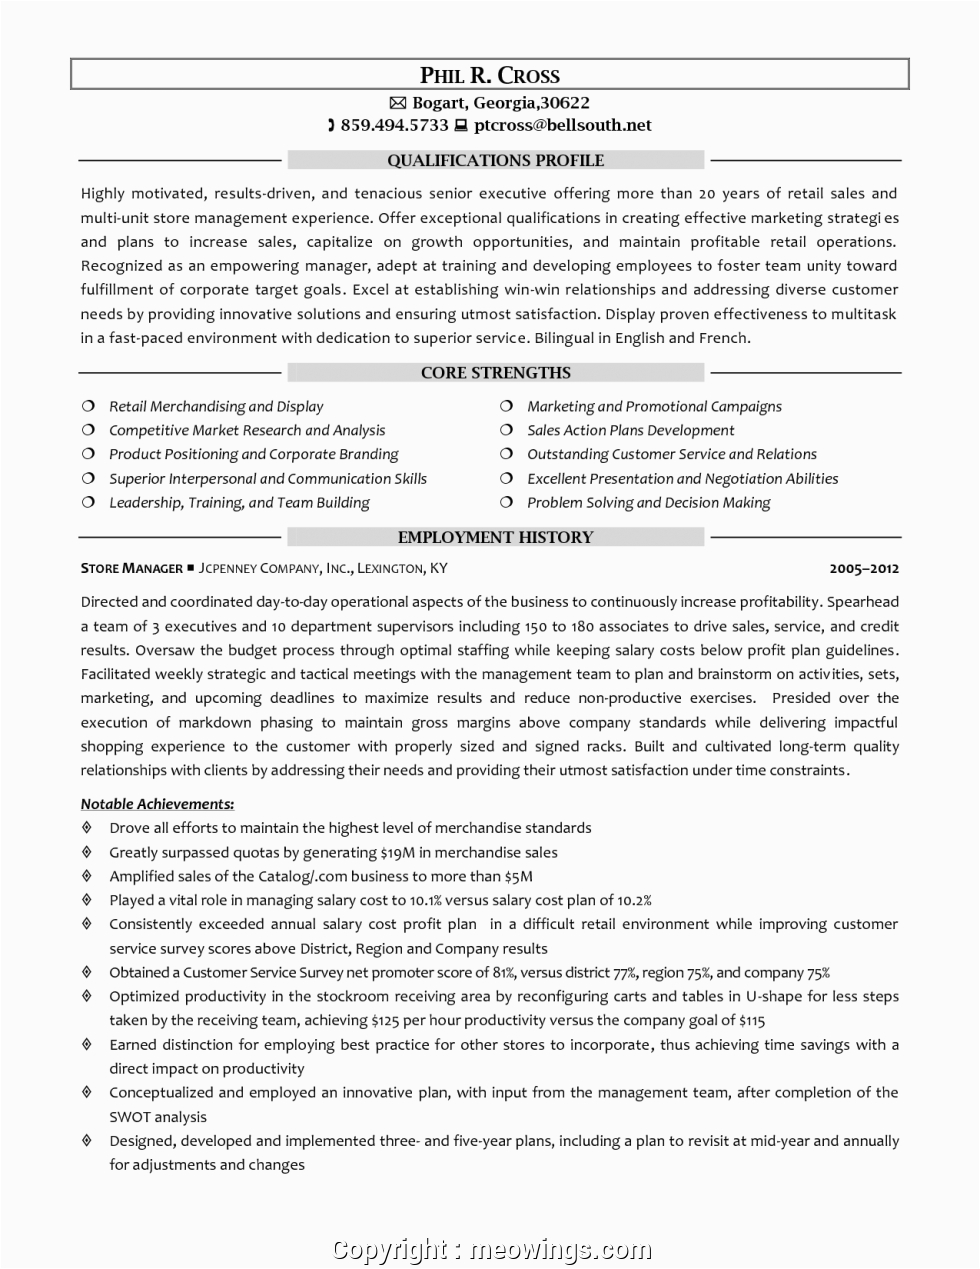 unique resume format for area sales manager in fmcg